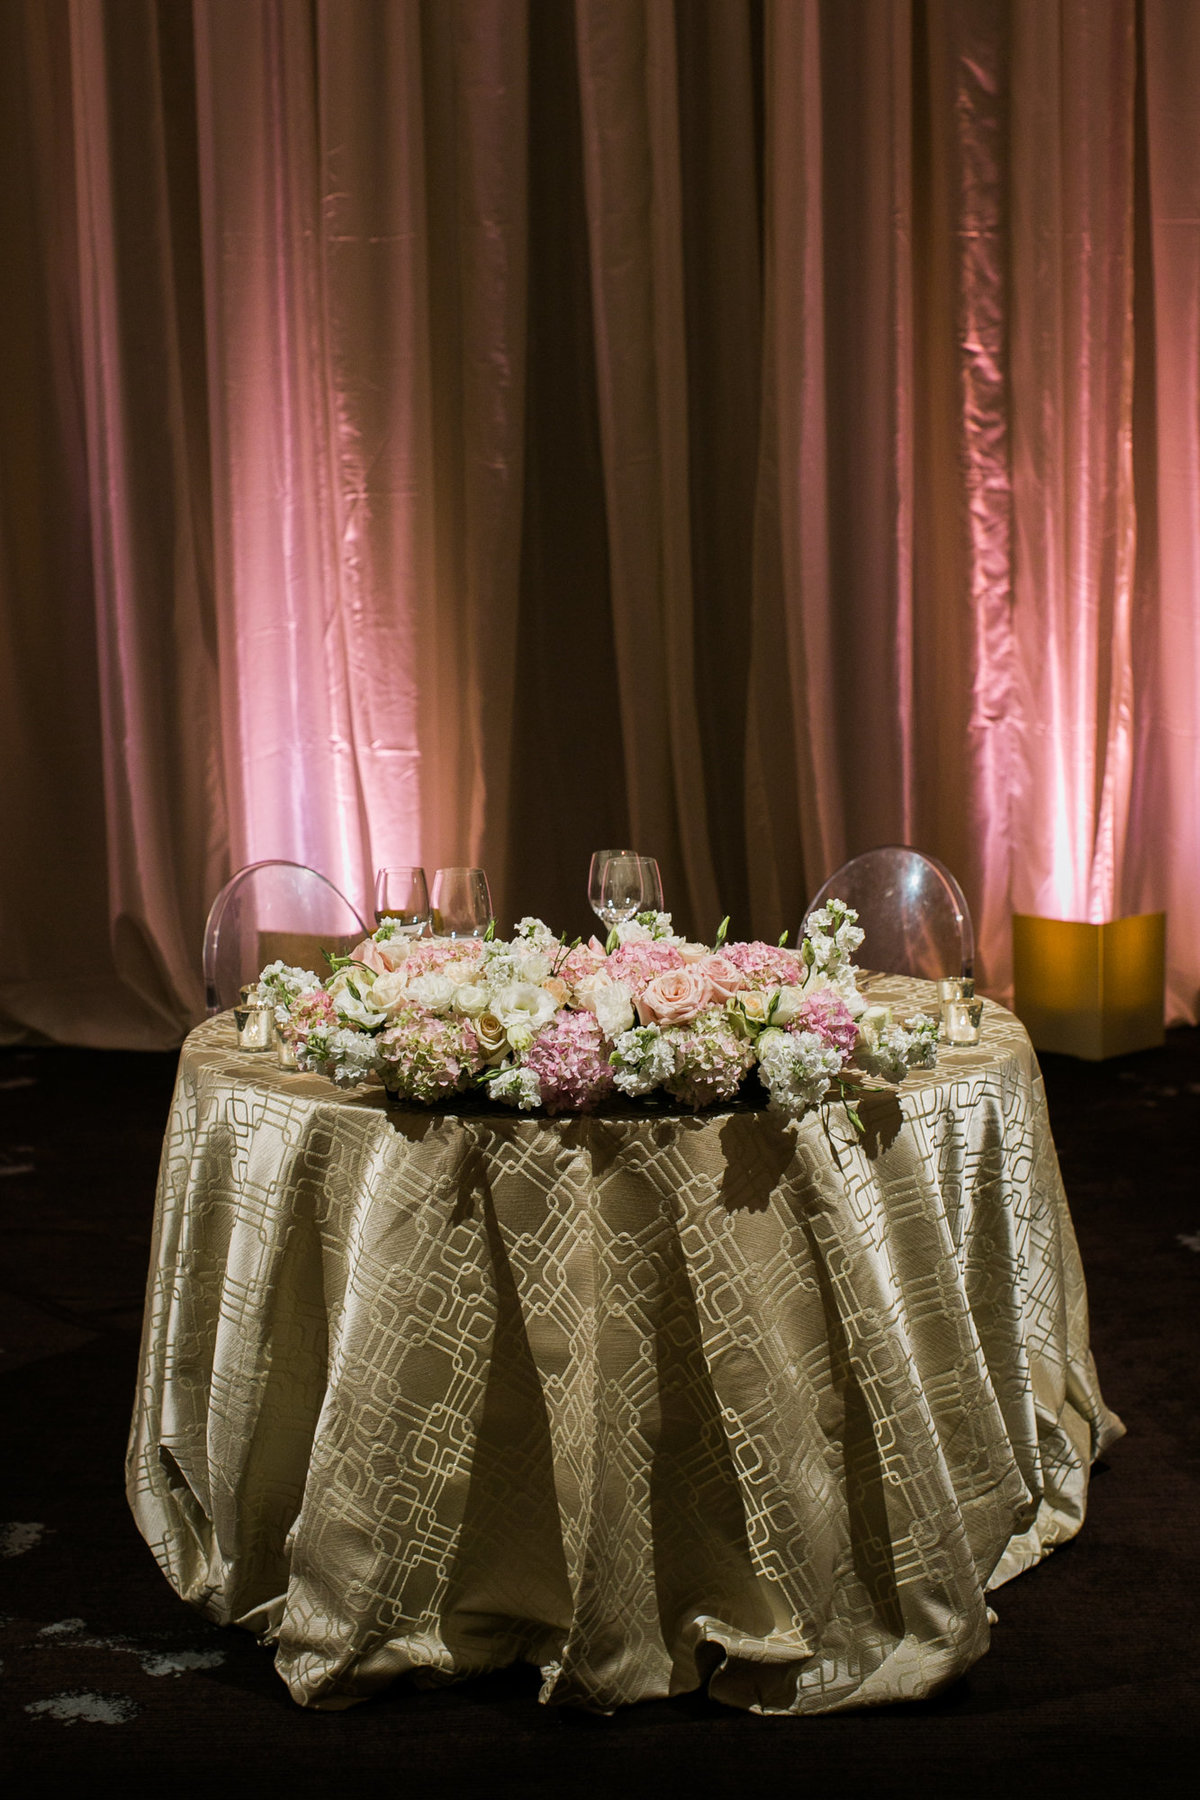 san_francisco_st_regis_hotel_luxury_wedding_037